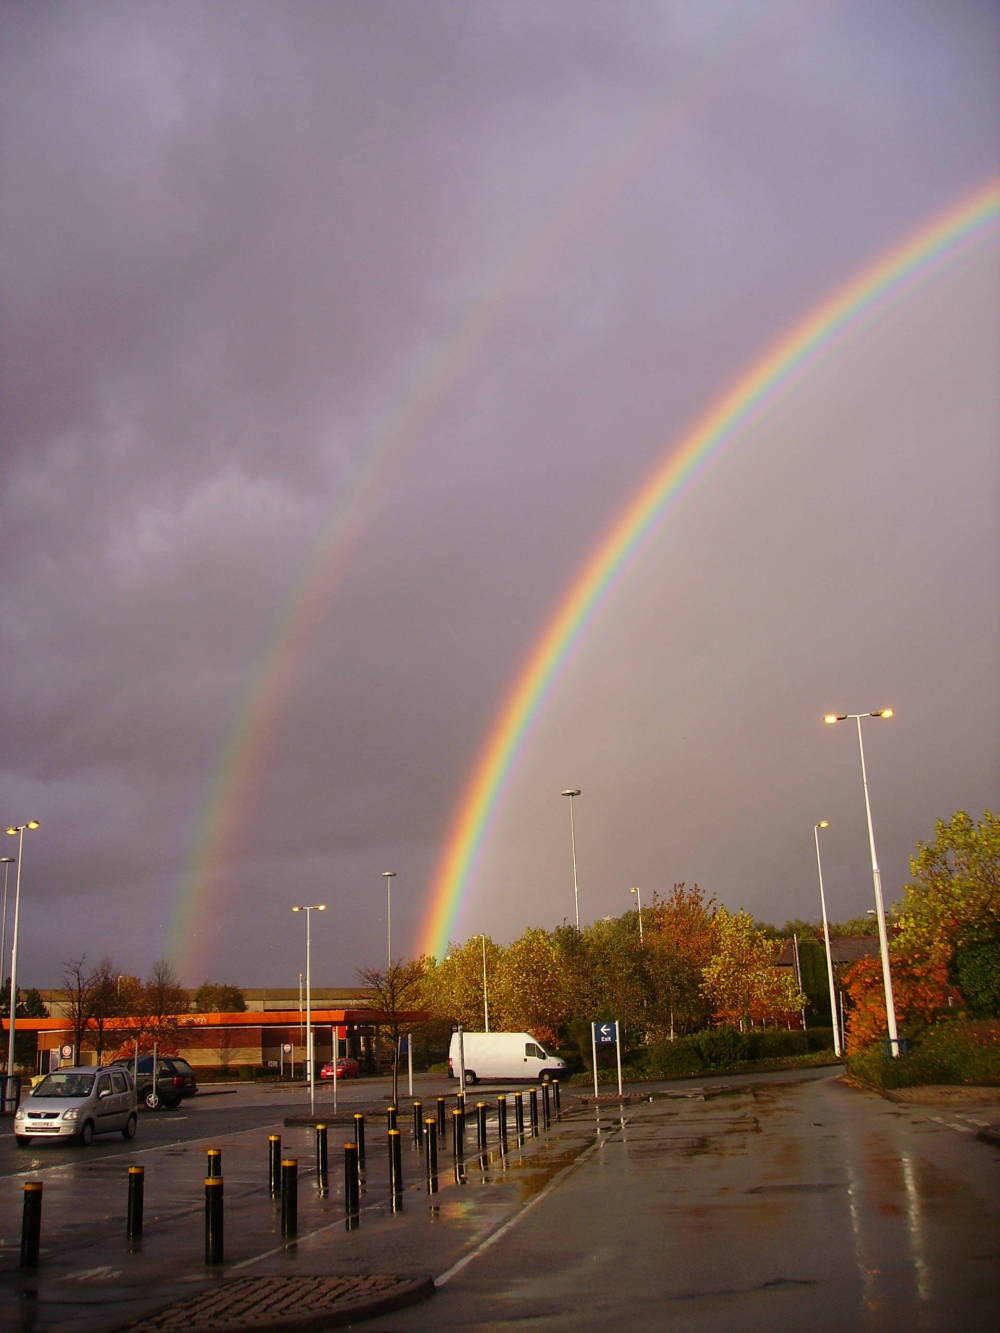 A Petrol Station at the End of the Rainbow